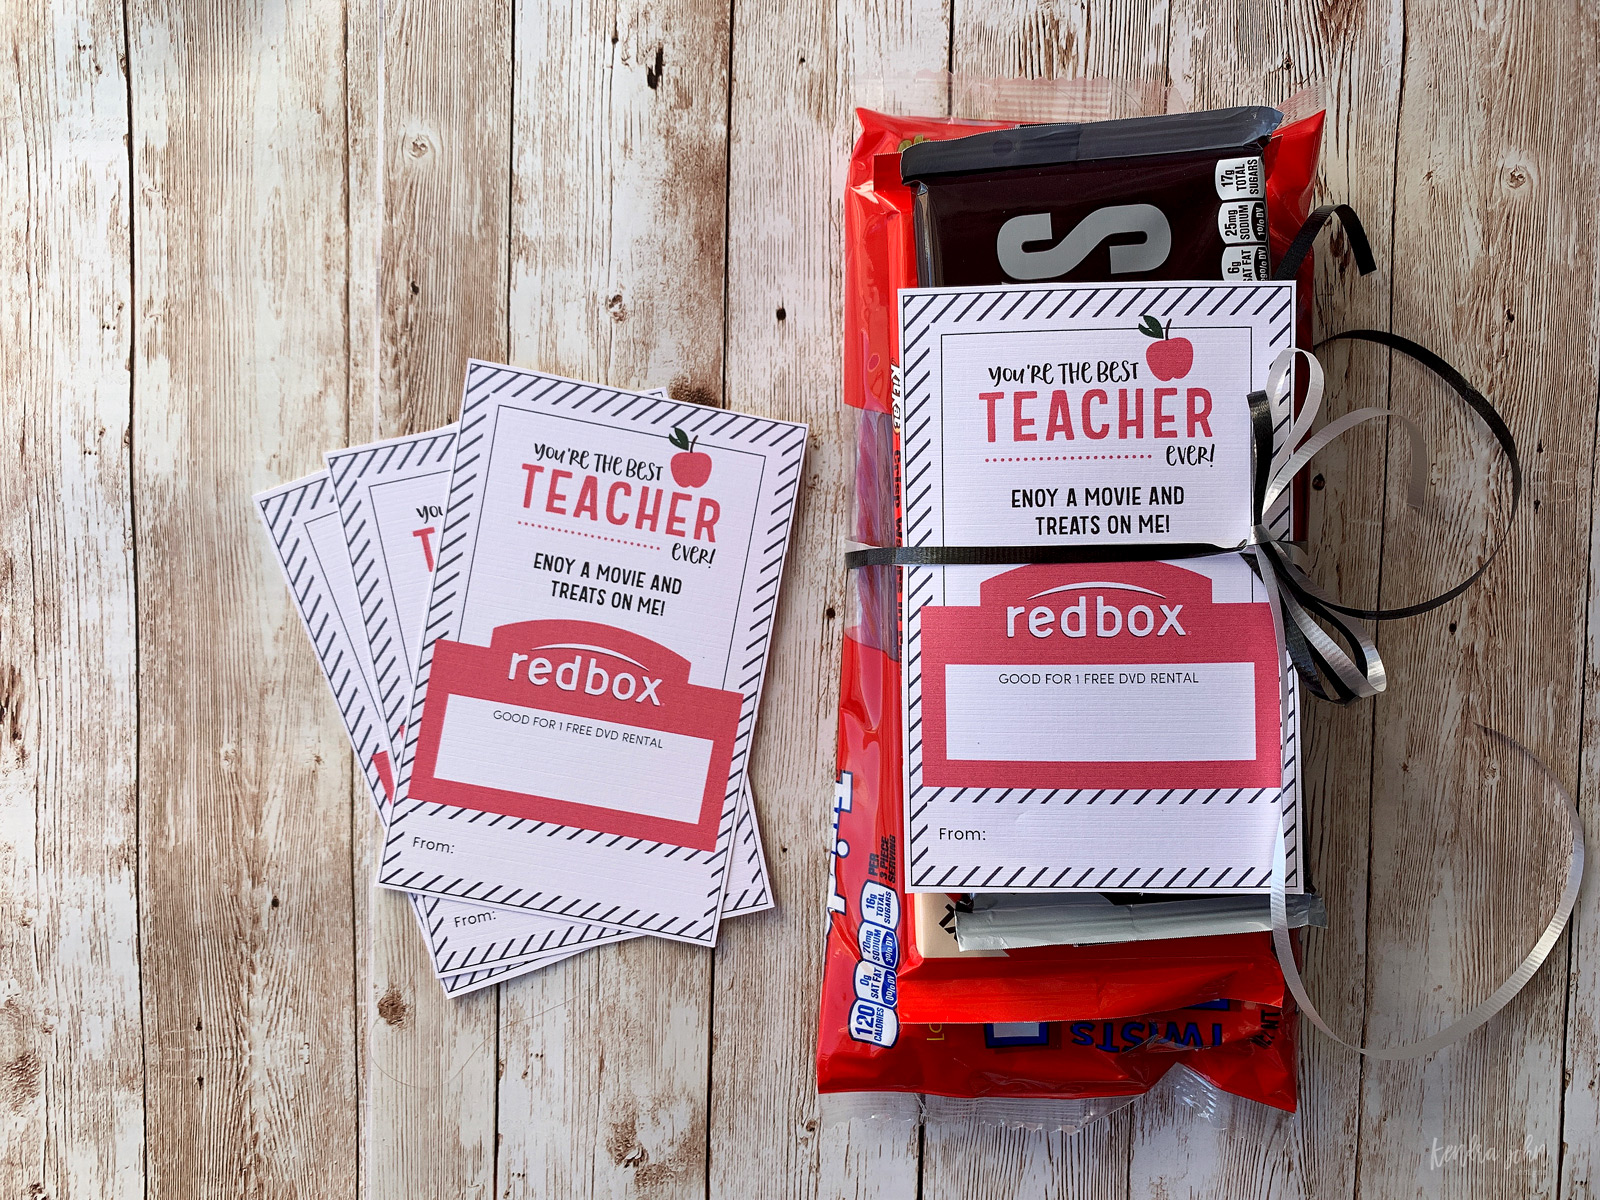 Teacher Appreciation Gift Ideas with Redbox Code and Treats